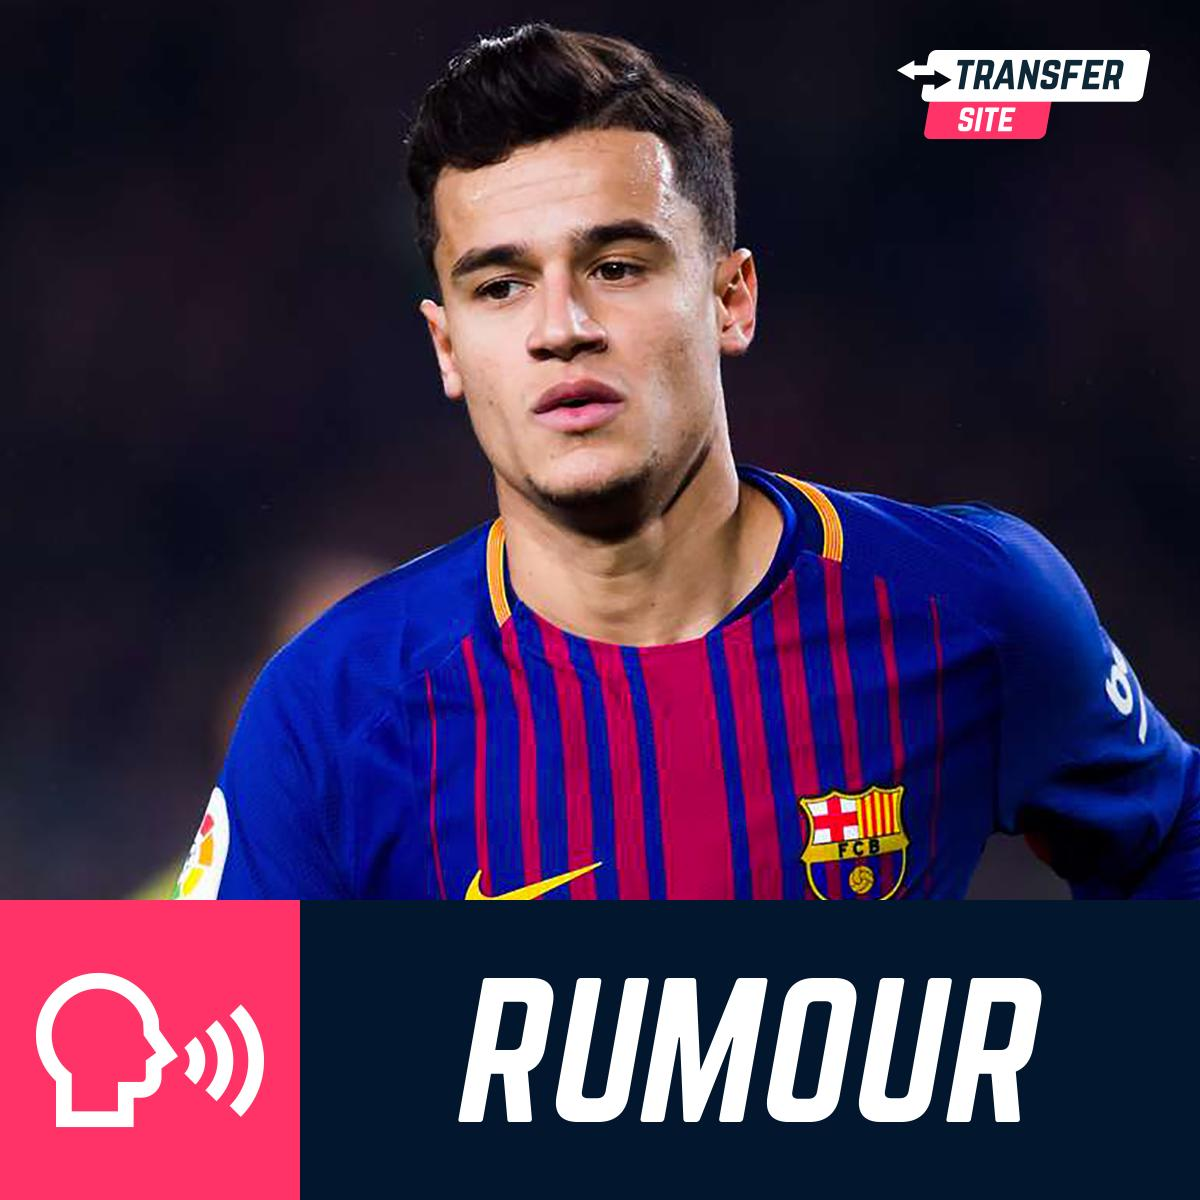 Transfer Site's photo on Philippe Coutinho